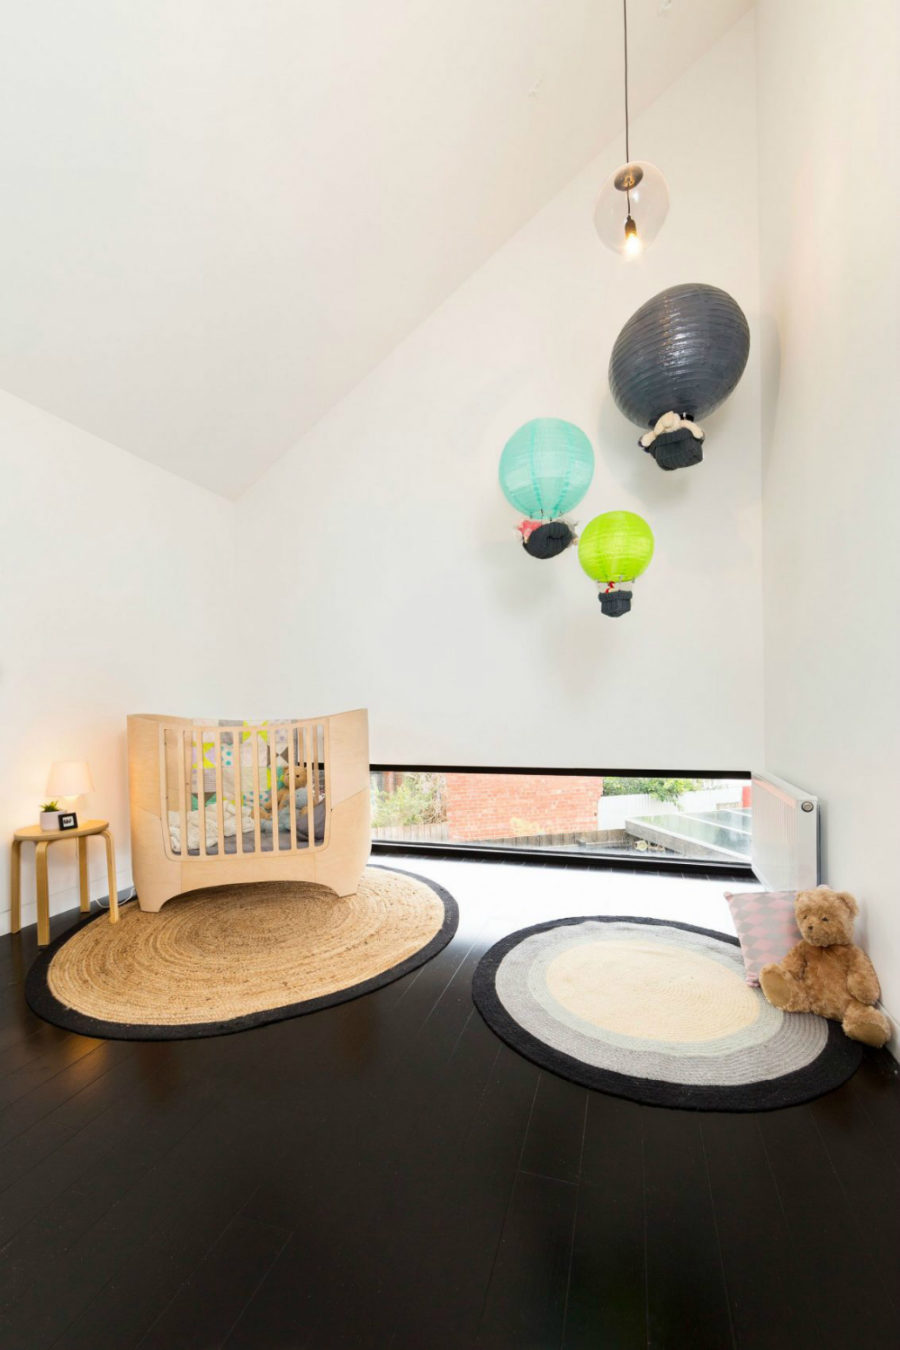 Kids room overlooks the backyard through a small transom